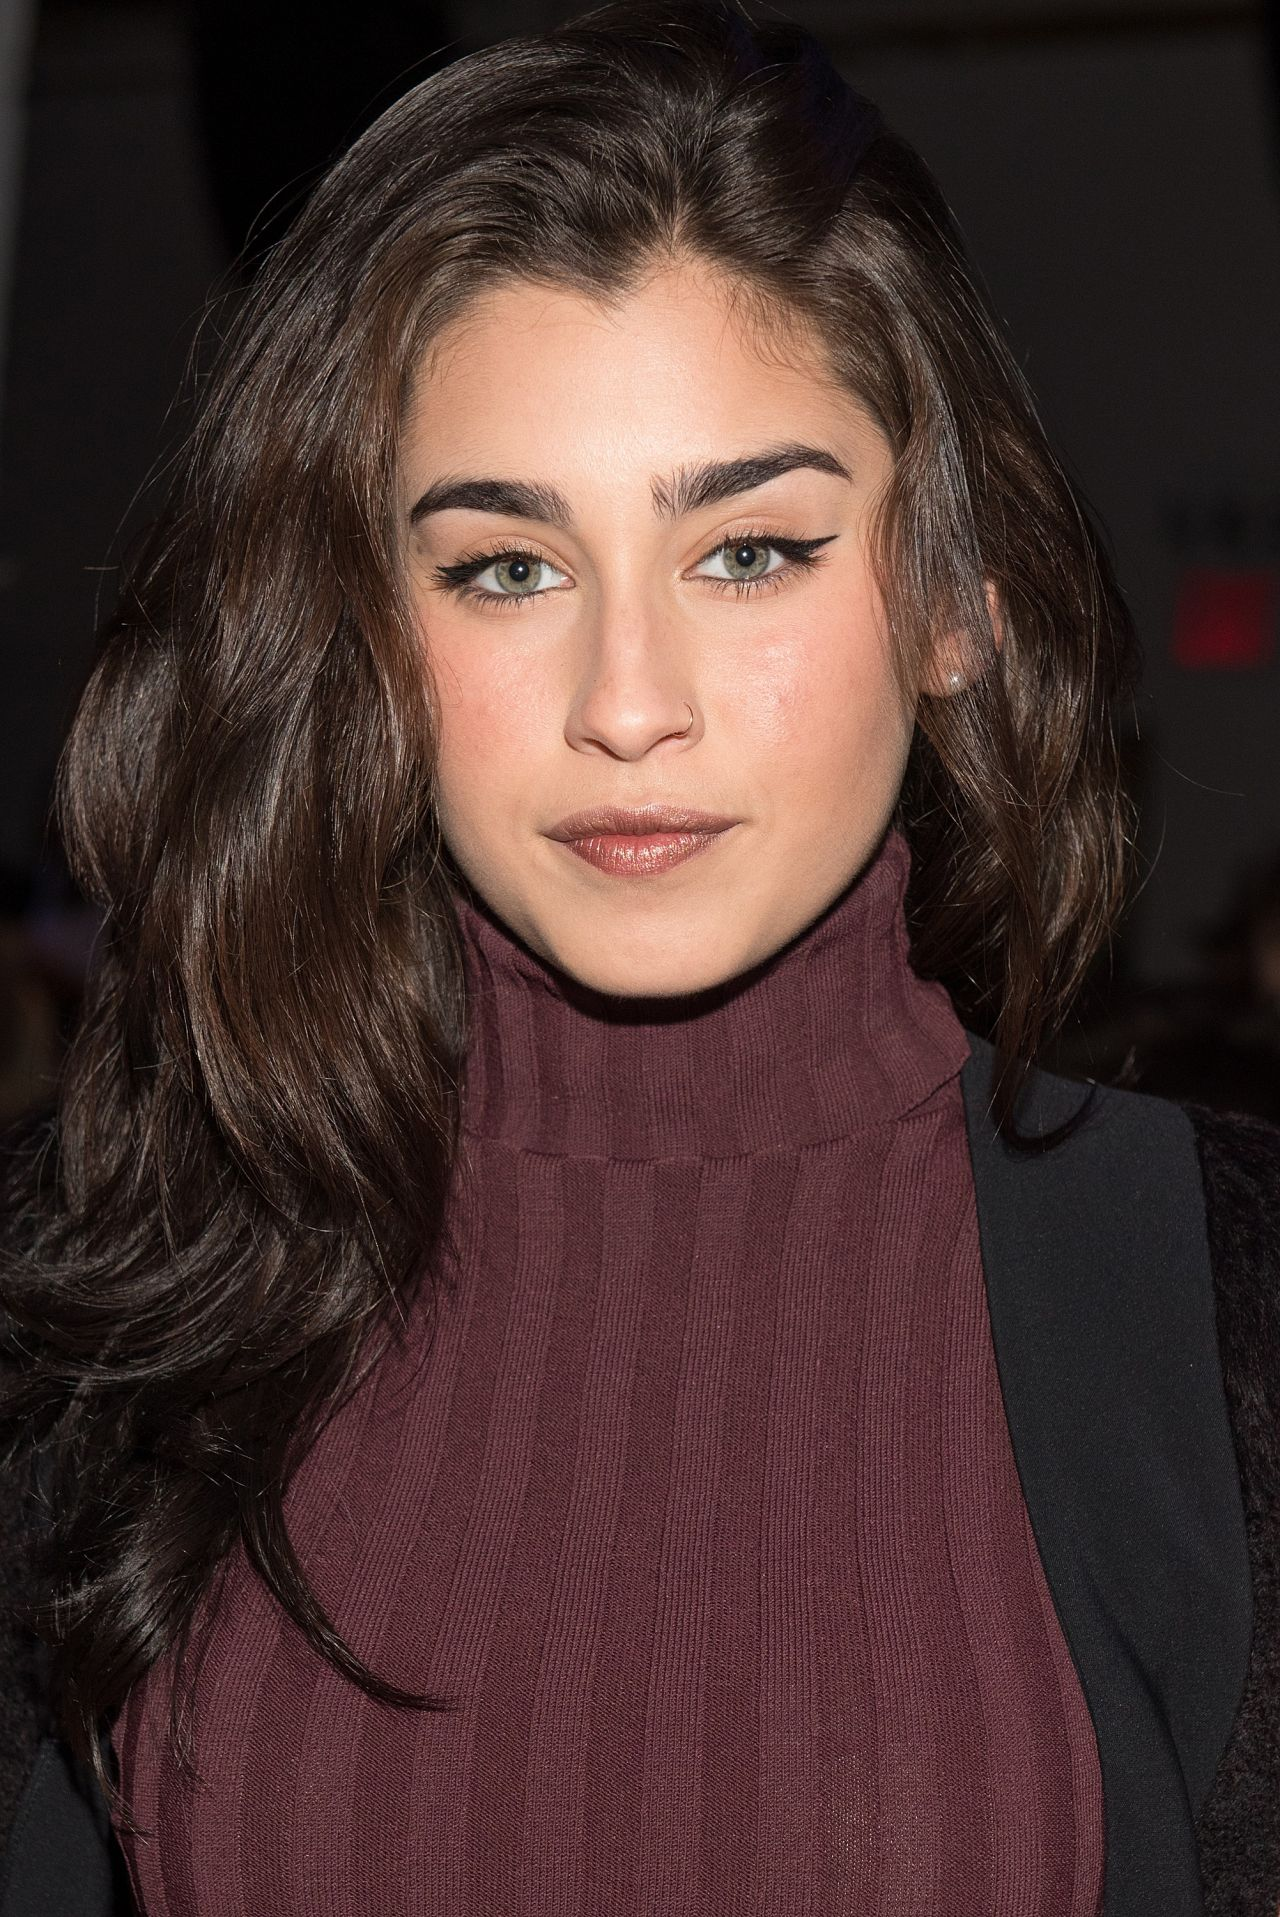 Lauren Jauregui photos